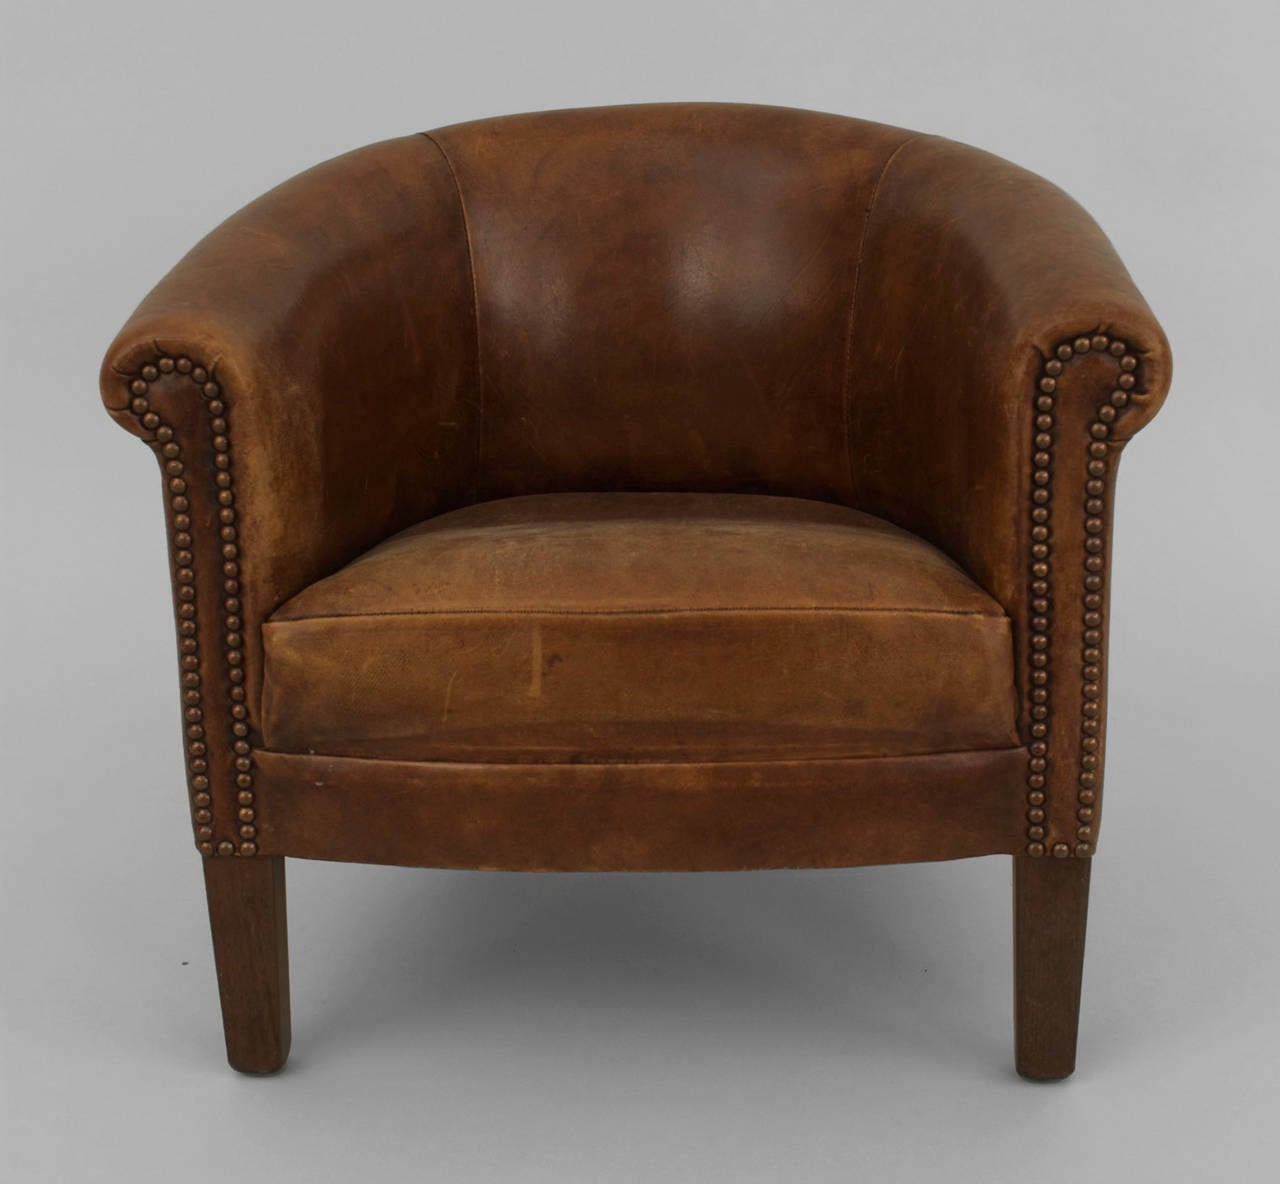 Charming English Georgian Style Round Back Brown Leather Childu0027s Club Chair With A  Seat Cushion And